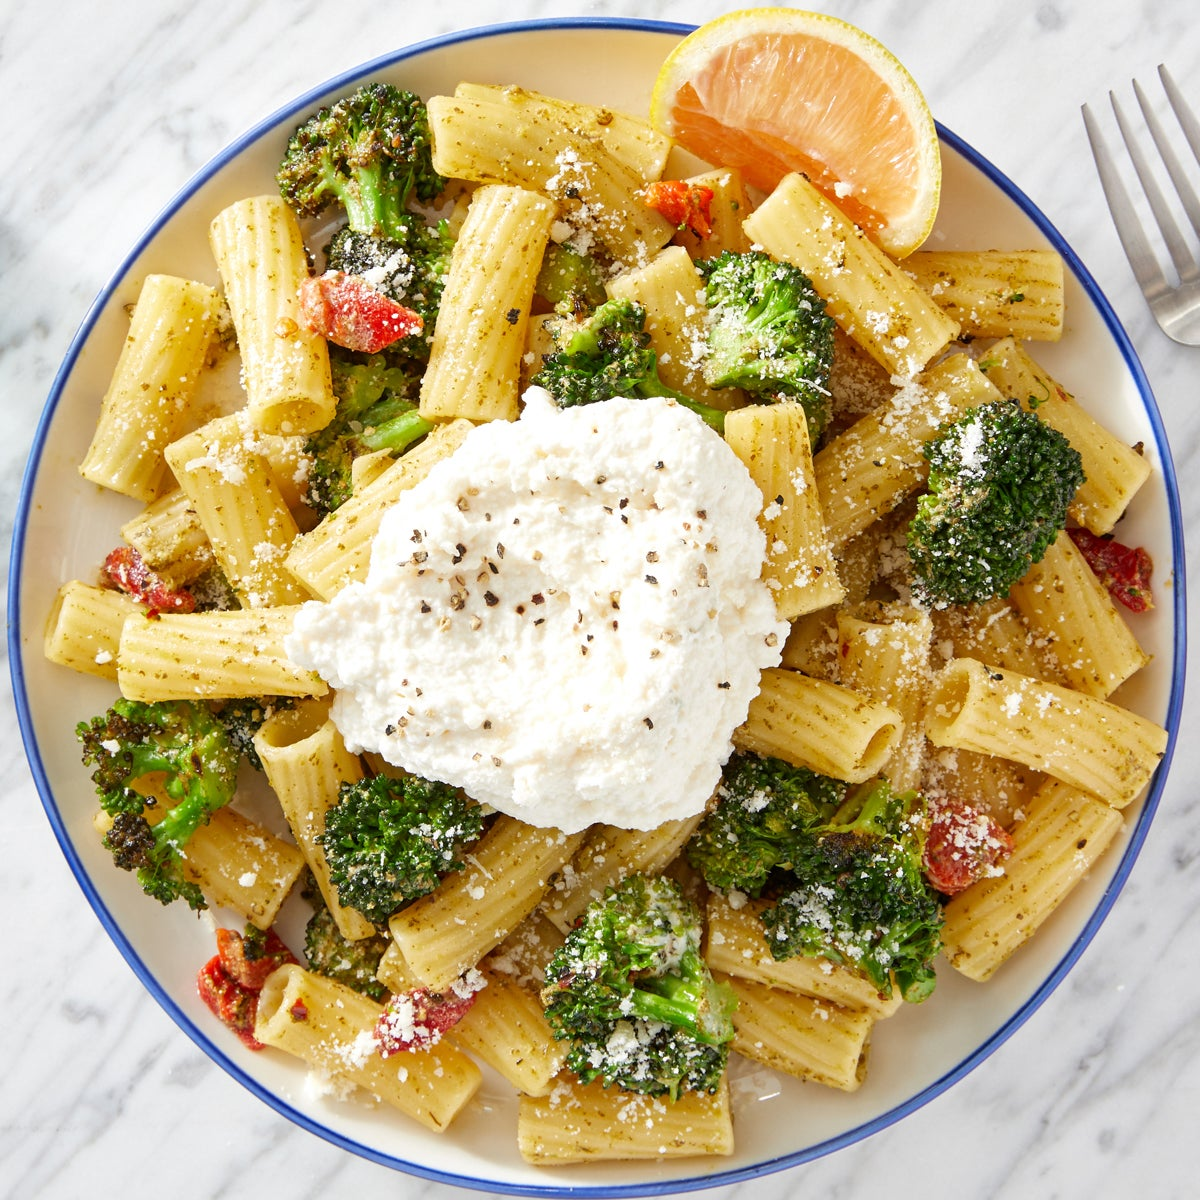 Pesto Pasta with Broccoli & Lemon Ricotta